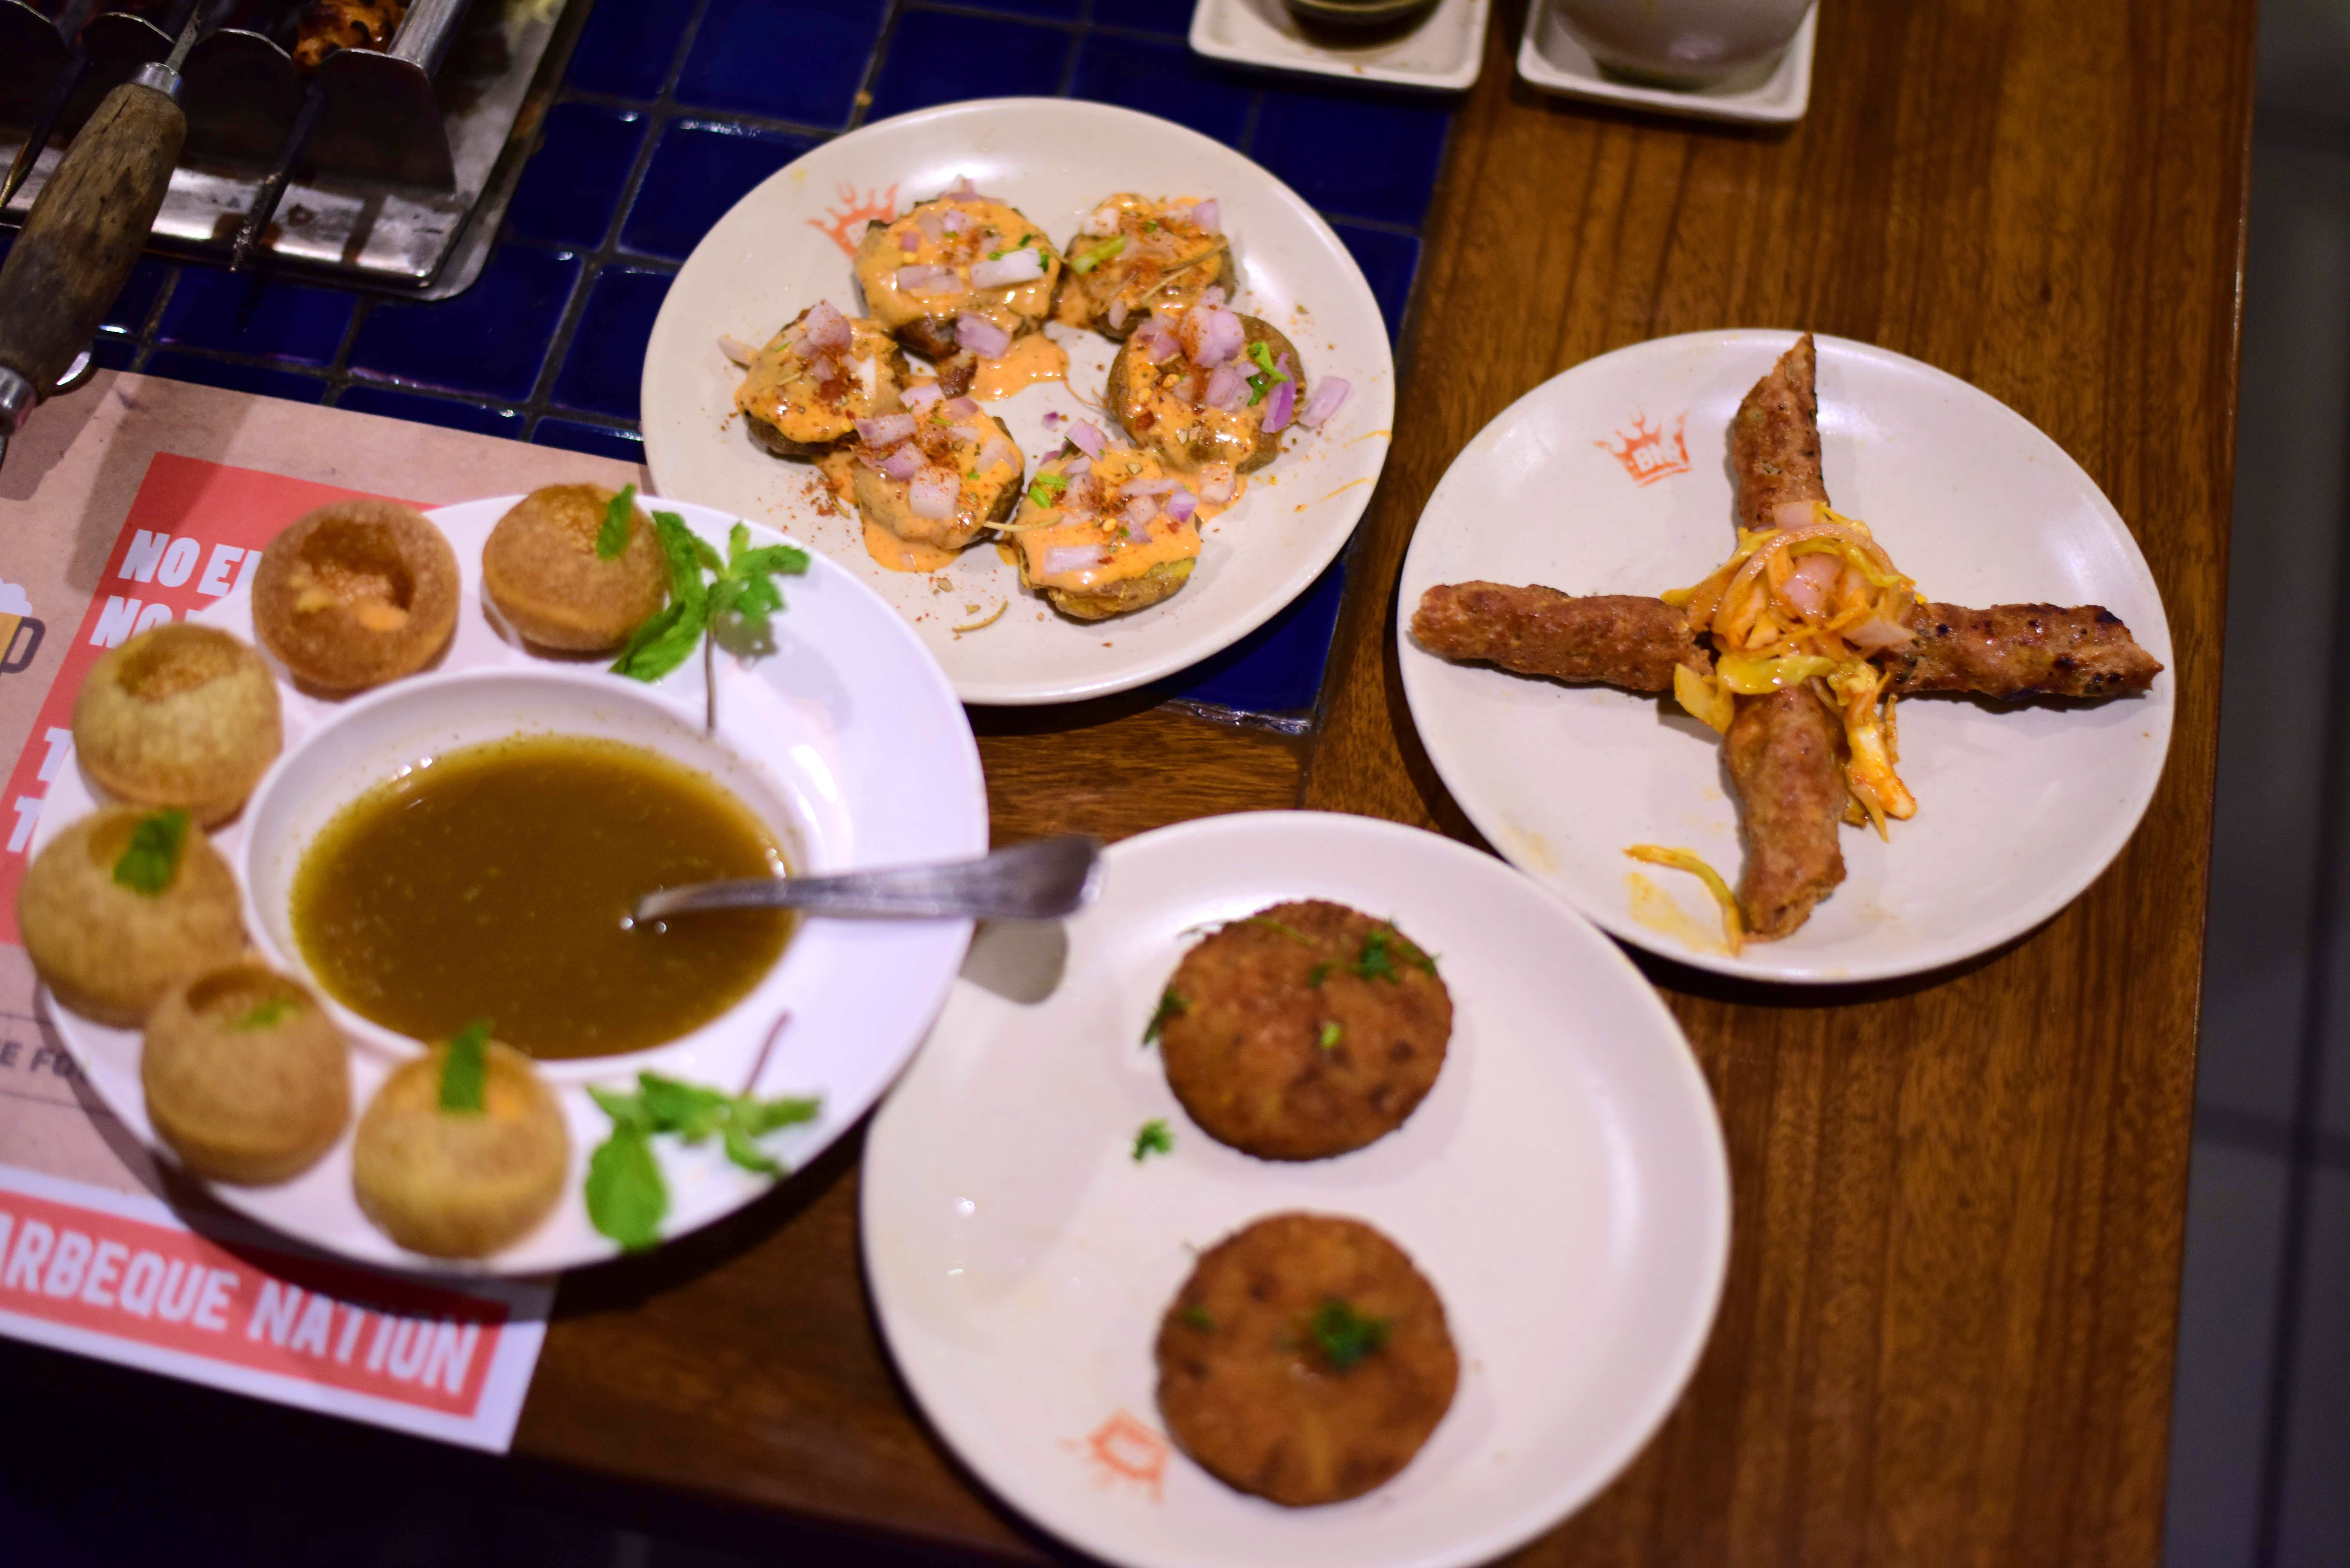 image - Barbeque Nation